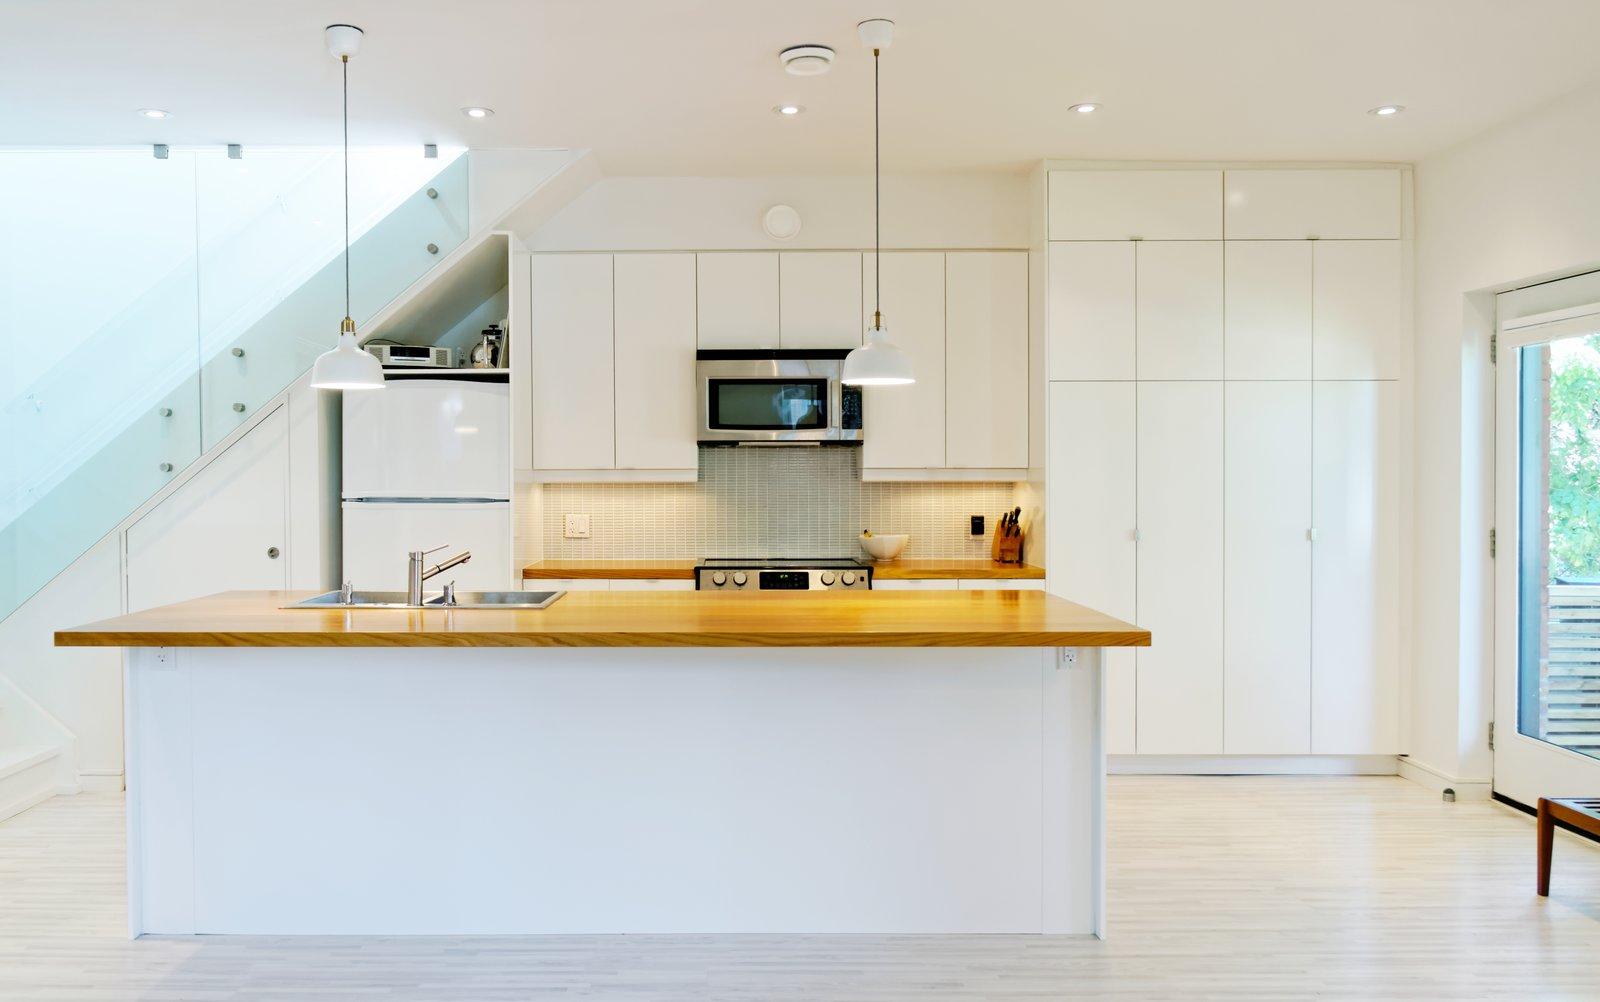 Our House - Kitchen Tagged: Light Hardwood Floor, Ceiling Lighting, Wood Counter, White Cabinet, Pendant Lighting, Drop In Sink, Microwave, Dishwasher, Staircase, and Glass Railing.  Our House by Solares Architecture